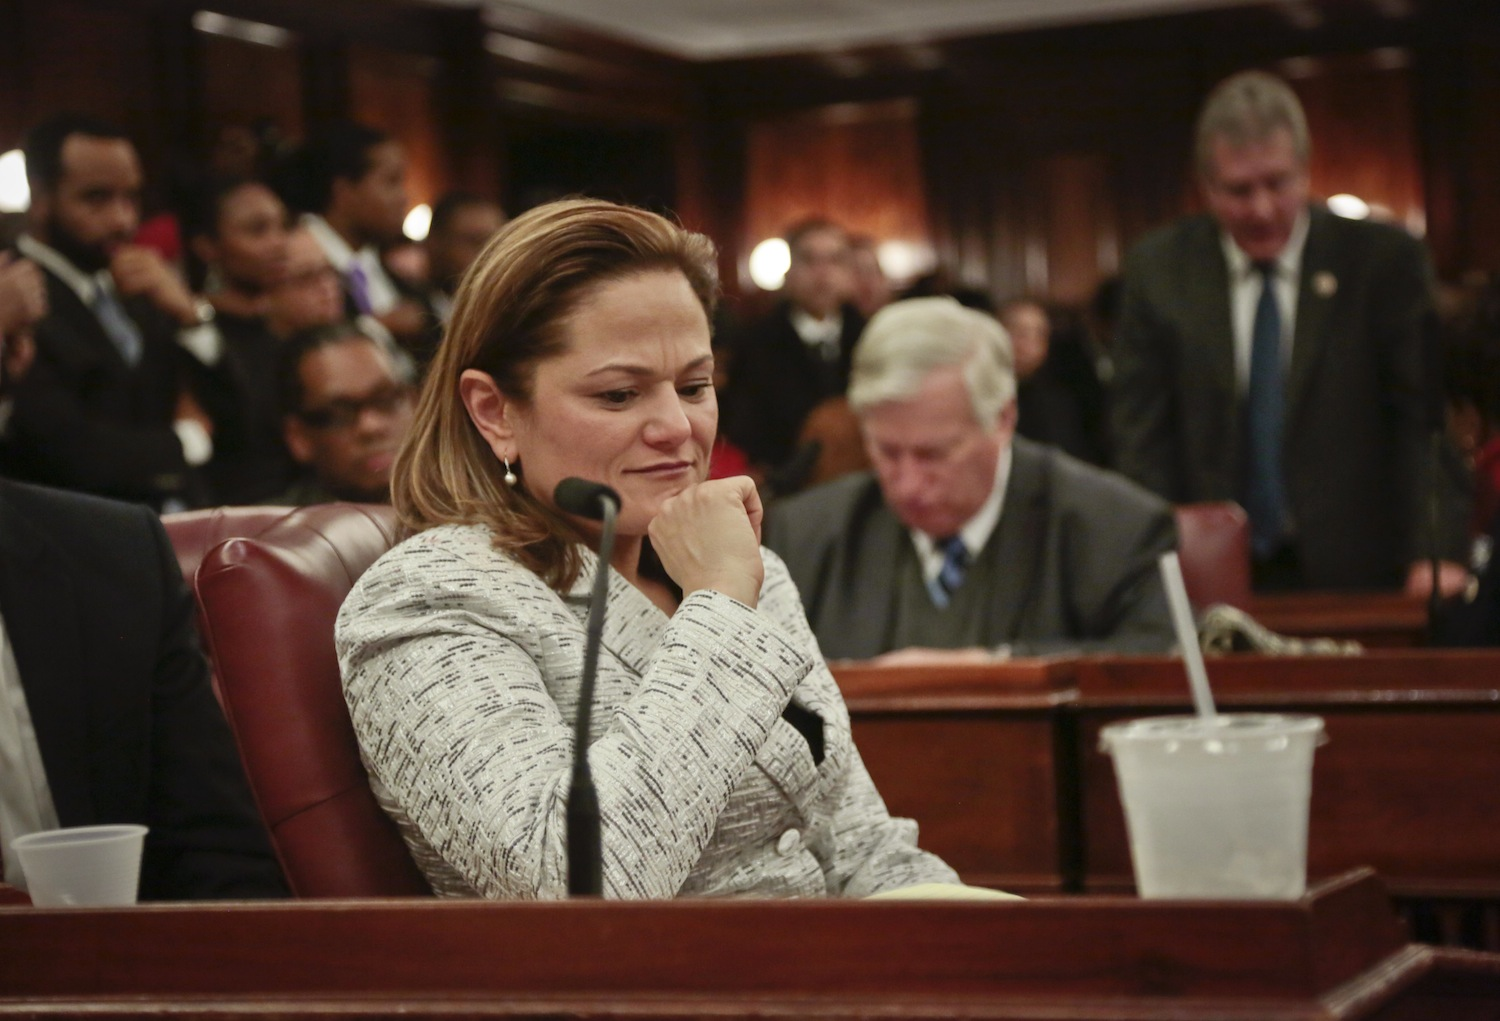 Melissa-Mark-Viverito